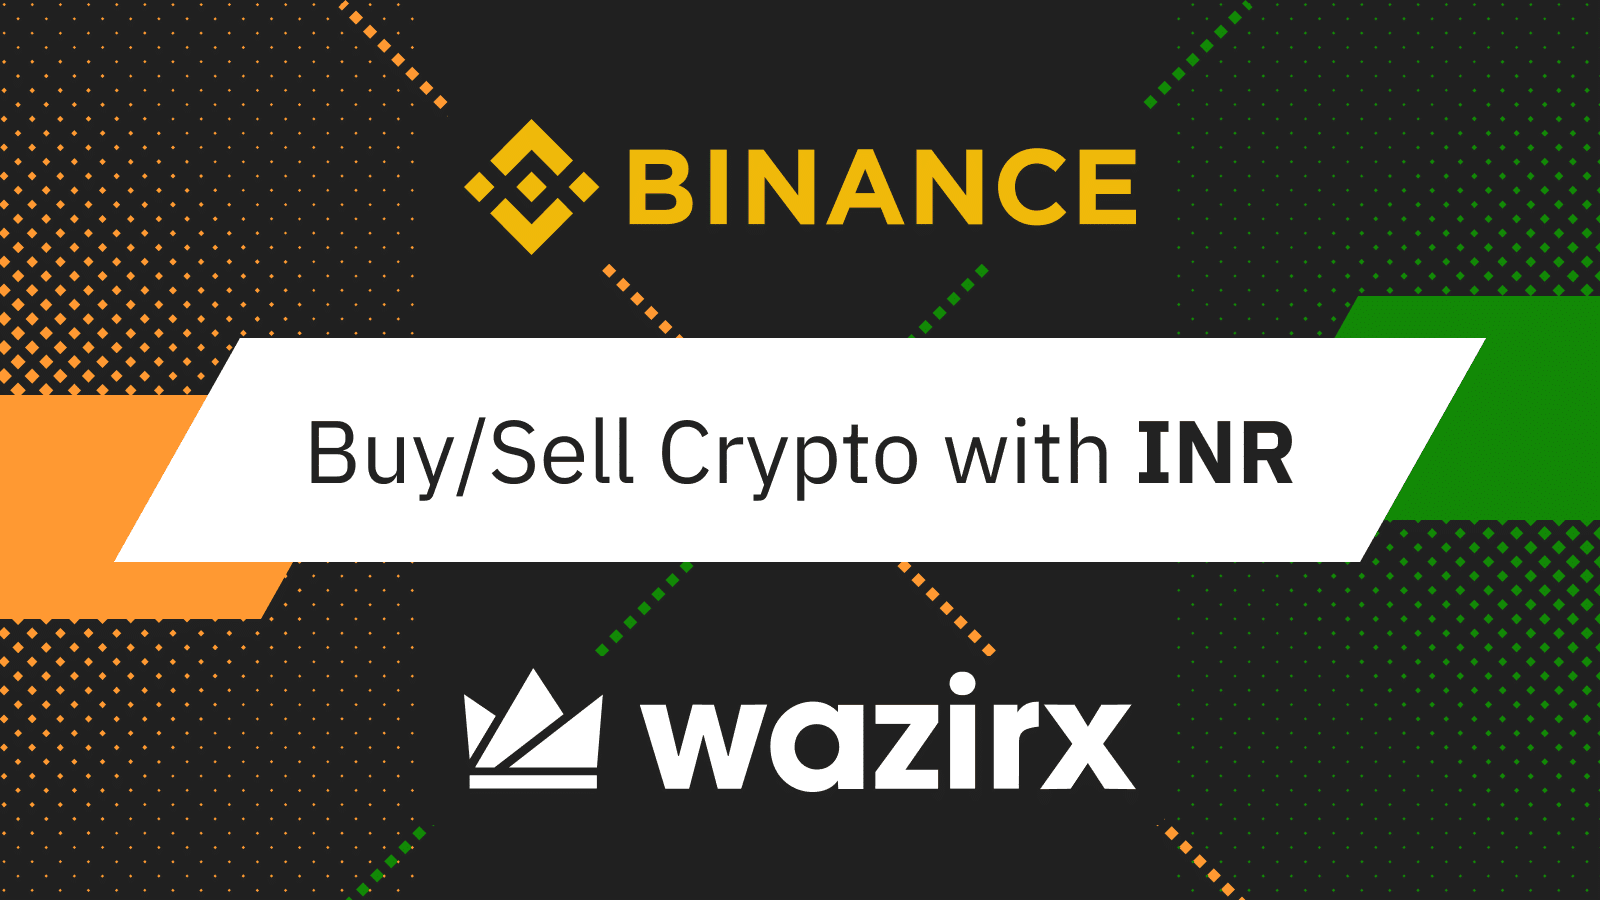 Binance acquiert l